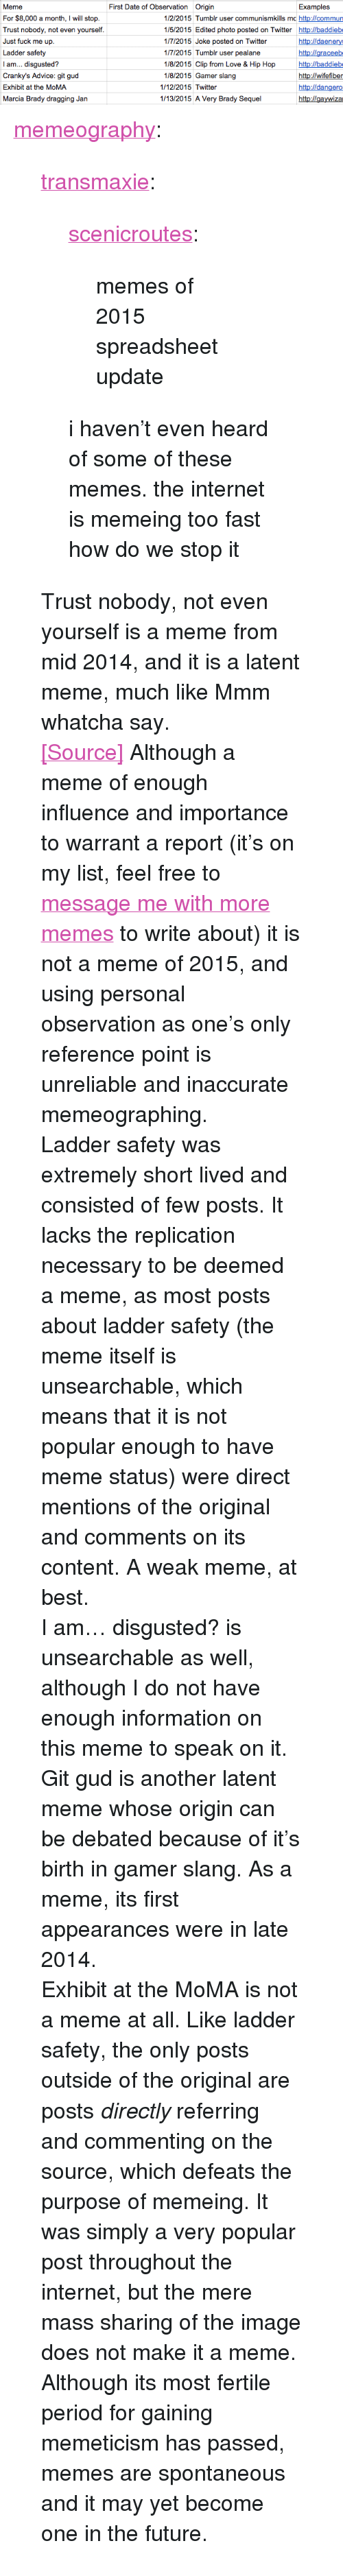 "Meme Status: Meme  For $8,000 a month, I will stop  Trust nobody, not even yourself  Just fuck me up  Ladder safety  I am... disgusted?  Cranky's Advice: git gud  Exhibit at the MoMA  Marcia Brady dragging Jan  First Date of Observation  Origin  Examples  1/2/2015 Tumblr user communismkills mc http://commun  1/5/2015 Edited photo posted on Twitter http://baddiebe  1/7/2015 Joke posted on Twitter  1/7/2015 Tumblr user pealane  1/8/2015 Clip from Love & Hip Hop  /8/2015 Gamer slang  /ldaene  http:llbadiebe  wifefiber  dangero  rgaywiza  1/12/2015 Twitter  1/13/2015 A Very Brady Sequel <p><a class=""tumblr_blog"" href=""http://memeography.tumblr.com/post/108396930543/transmaxie-scenicroutes-memes-of-2015"">memeography</a>:</p> <blockquote> <p><a class=""tumblr_blog"" href=""http://transmaxie.tumblr.com/post/108174346731/scenicroutes-memes-of-2015-spreadsheet-update"">transmaxie</a>:</p> <blockquote> <p><a class=""tumblr_blog"" href=""http://scenicrout.es/post/107995329420/memes-of-2015-spreadsheet-update"">scenicroutes</a>:</p> <blockquote> <p>memes of 2015 spreadsheet update</p> </blockquote> <p>i haven't even heard of some of these memes. the internet is memeing too fast how do we stop it</p> </blockquote> <p>Trust nobody, not even yourself is a meme from mid 2014, and it is a latent meme, much like Mmm whatcha say. <a href=""http://knowyourmeme.com/memes/trust-nobody-not-even-yourself"">[Source]</a> Although a meme of enough influence and importance to warrant a report (it's on my list, feel free to <a href=""http://memeography.tumblr.com/ask"">message me with more memes</a> to write about) it is not a meme of 2015, and using personal observation as one's only reference point is unreliable and inaccurate memeographing.</p> <p>Ladder safety was extremely short lived and consisted of few posts. It lacks the replication necessary to be deemed a meme, as most posts about ladder safety (the meme itself is unsearchable, which means that it is not popular enough to have meme status) were direct mentions of the original and comments on its content. A weak meme, at best.</p> <p>I am… disgusted? is unsearchable as well, although I do not have enough information on this meme to speak on it.</p> <p>Git gud is another latent meme whose origin can be debated because of it's birth in gamer slang. As a meme, its first appearances were in late 2014.</p> <p>Exhibit at the MoMA is not a meme at all. Like ladder safety, the only posts outside of the original are posts <em>directly </em>referring and commenting on the source, which defeats the purpose of memeing. It was simply a very popular post throughout the internet, but the mere mass sharing of the image does not make it a meme. Although its most fertile period for gaining memeticism has passed, memes are spontaneous and it may yet become one in the future.</p> </blockquote>"